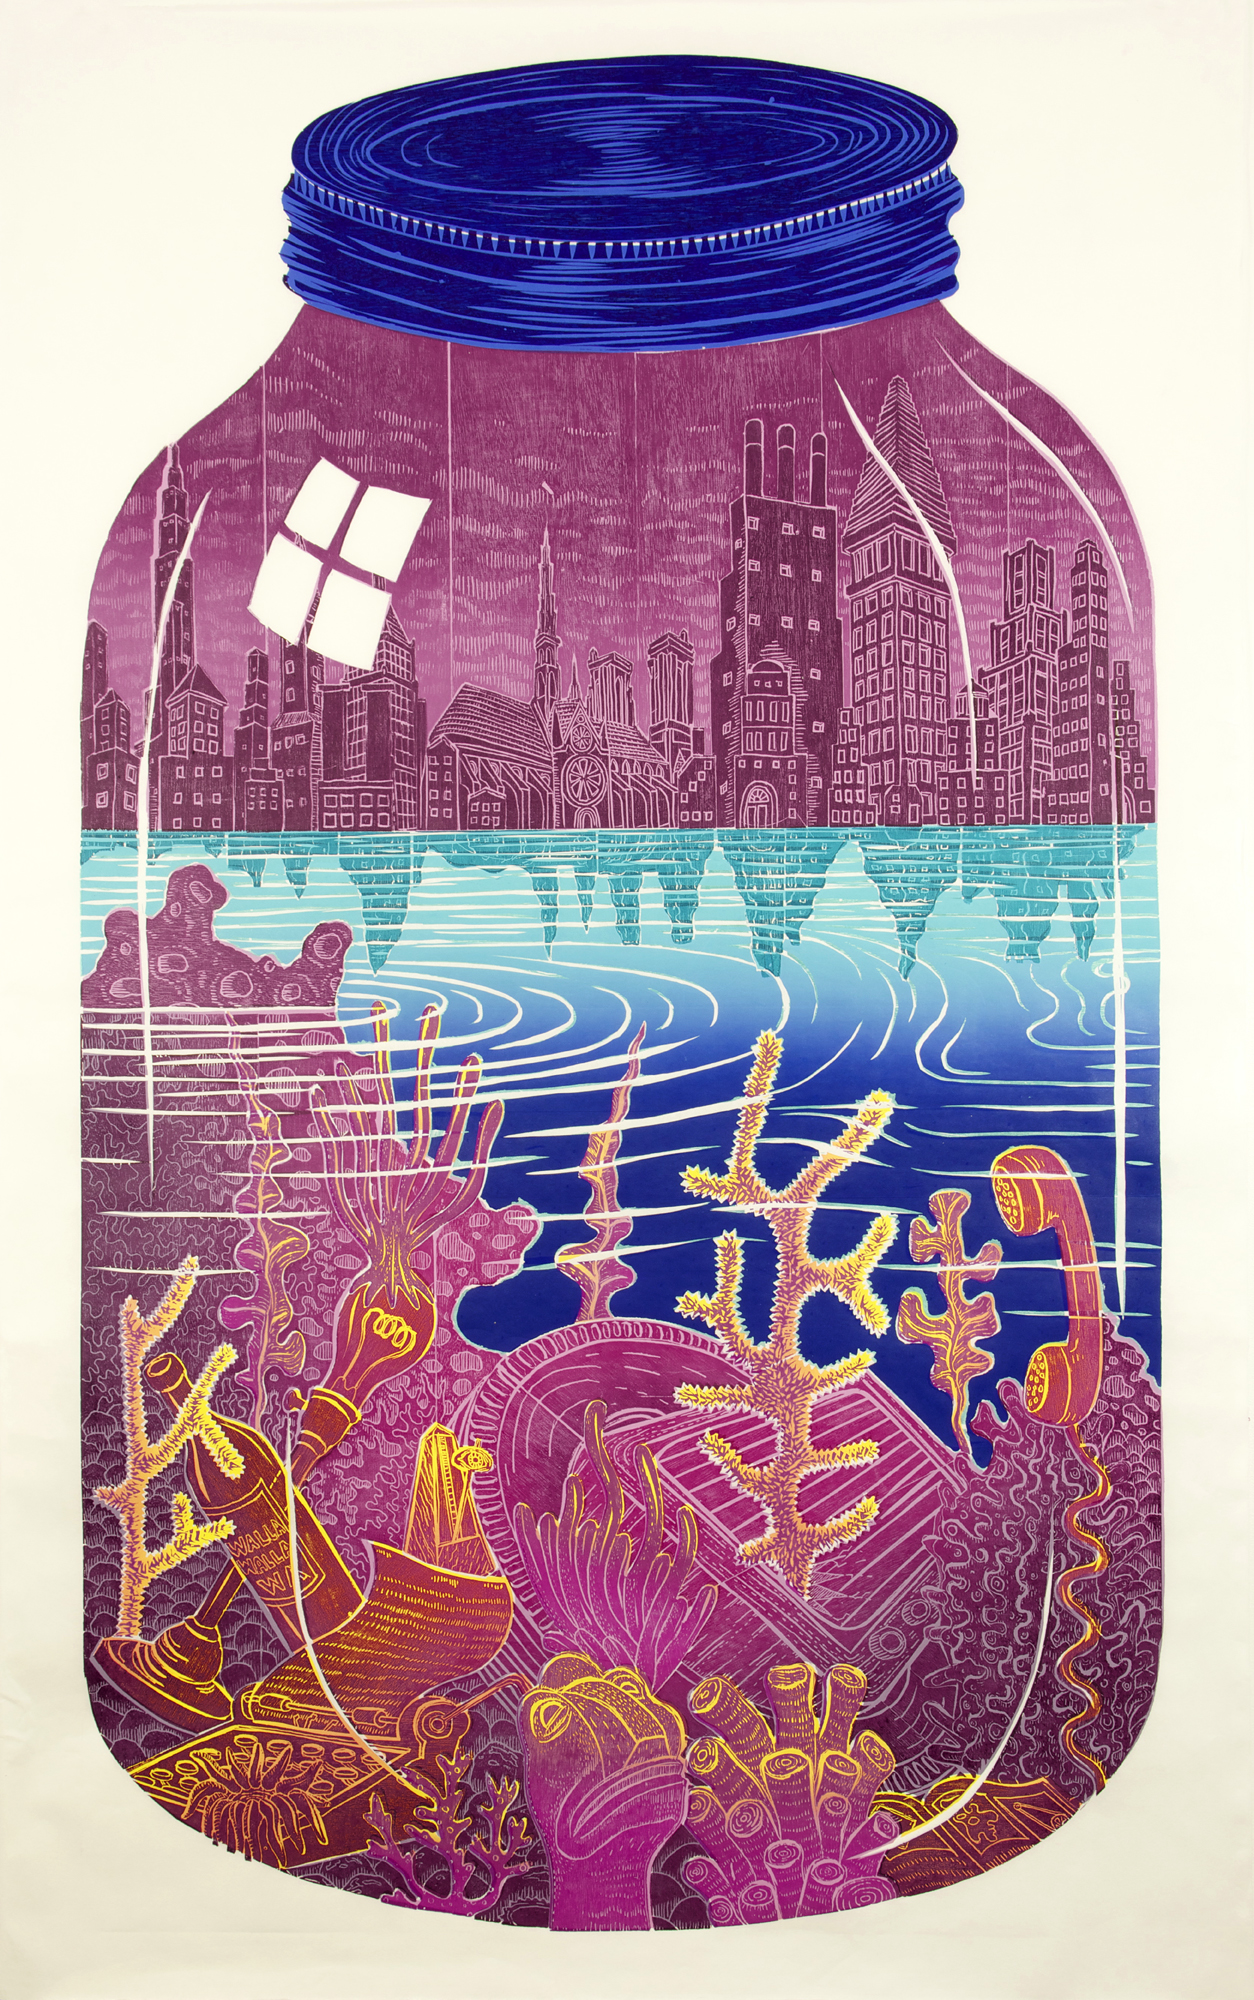 Photo: 'The Reef' woodblock print by John Buck